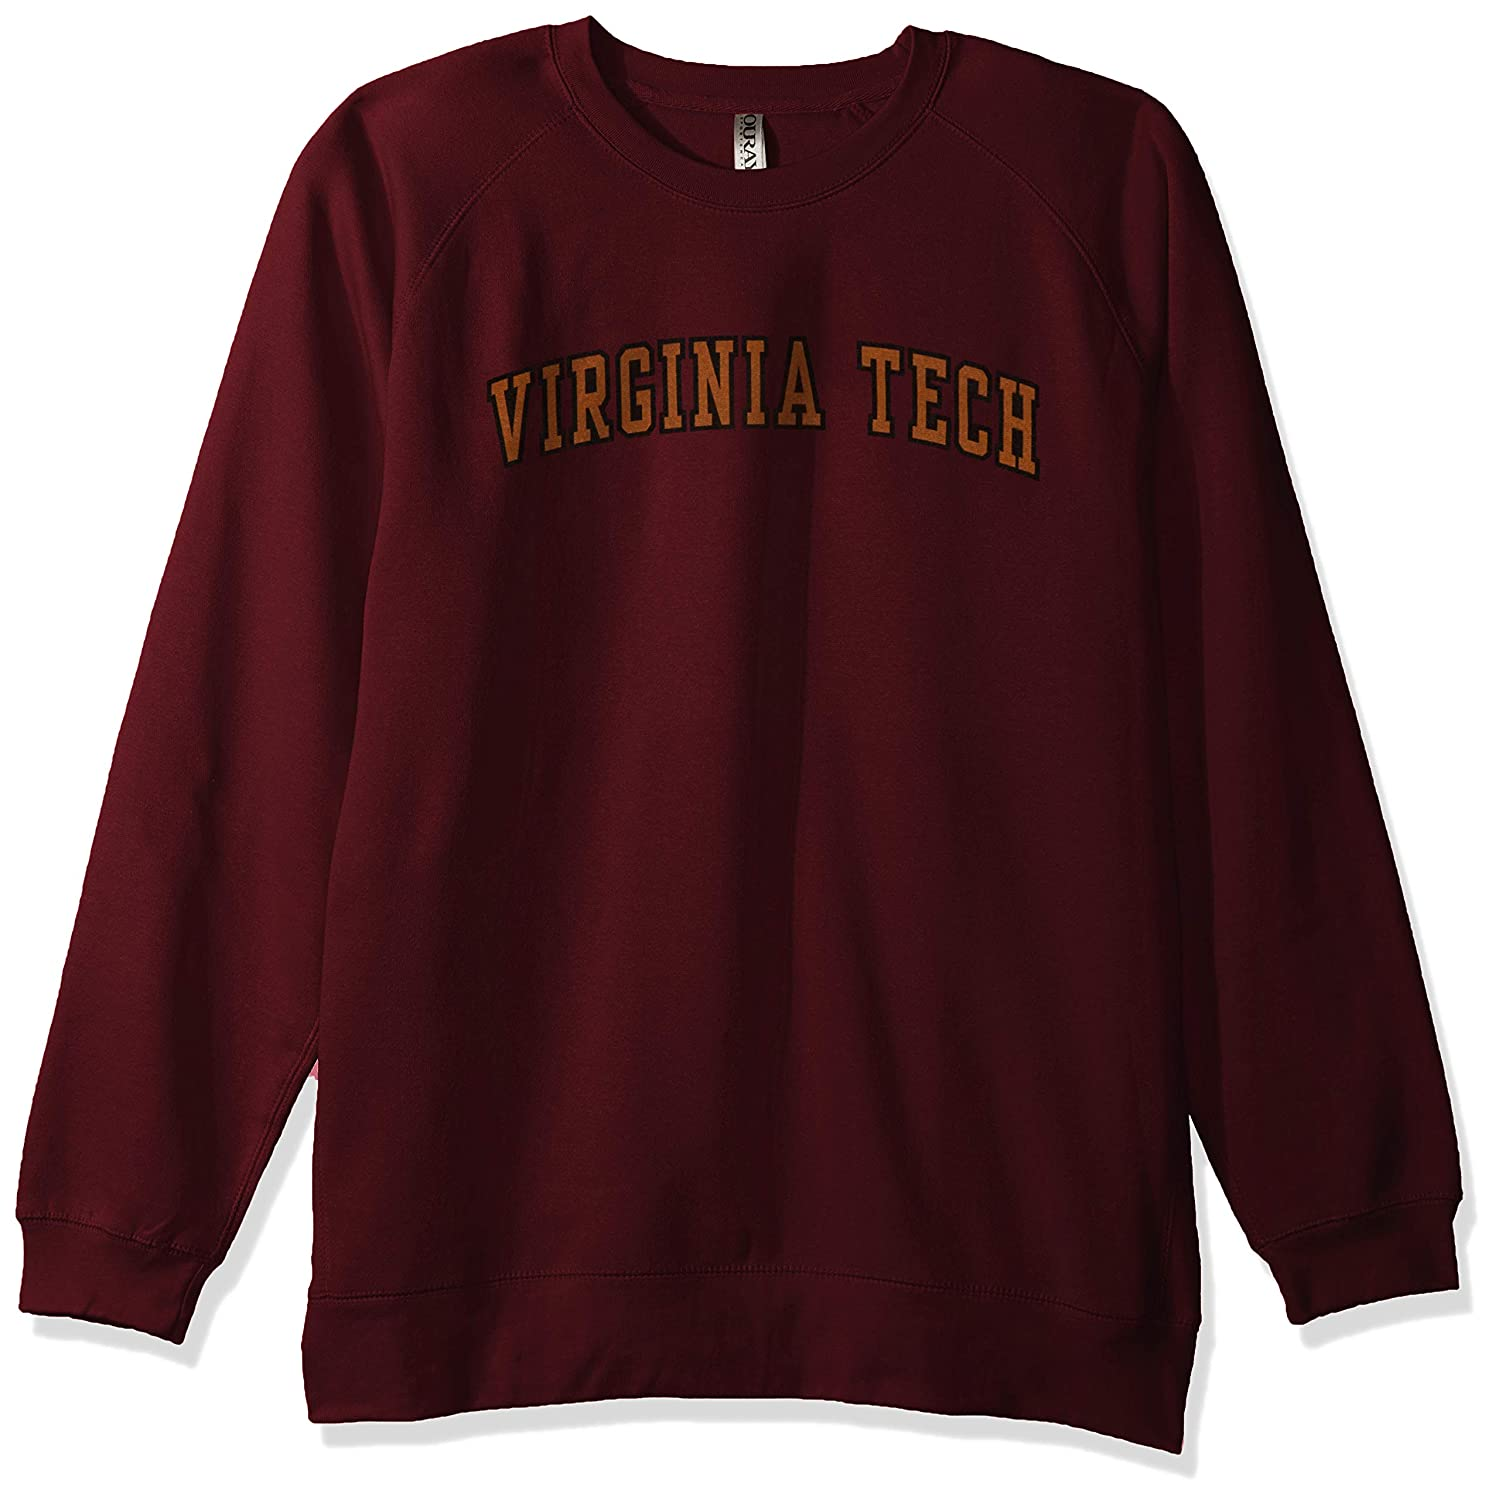 Ouray Sportswear NCAA Virginia Tech Hokies Mens Benchmark Crew Sweatshirt X-Large Maroon